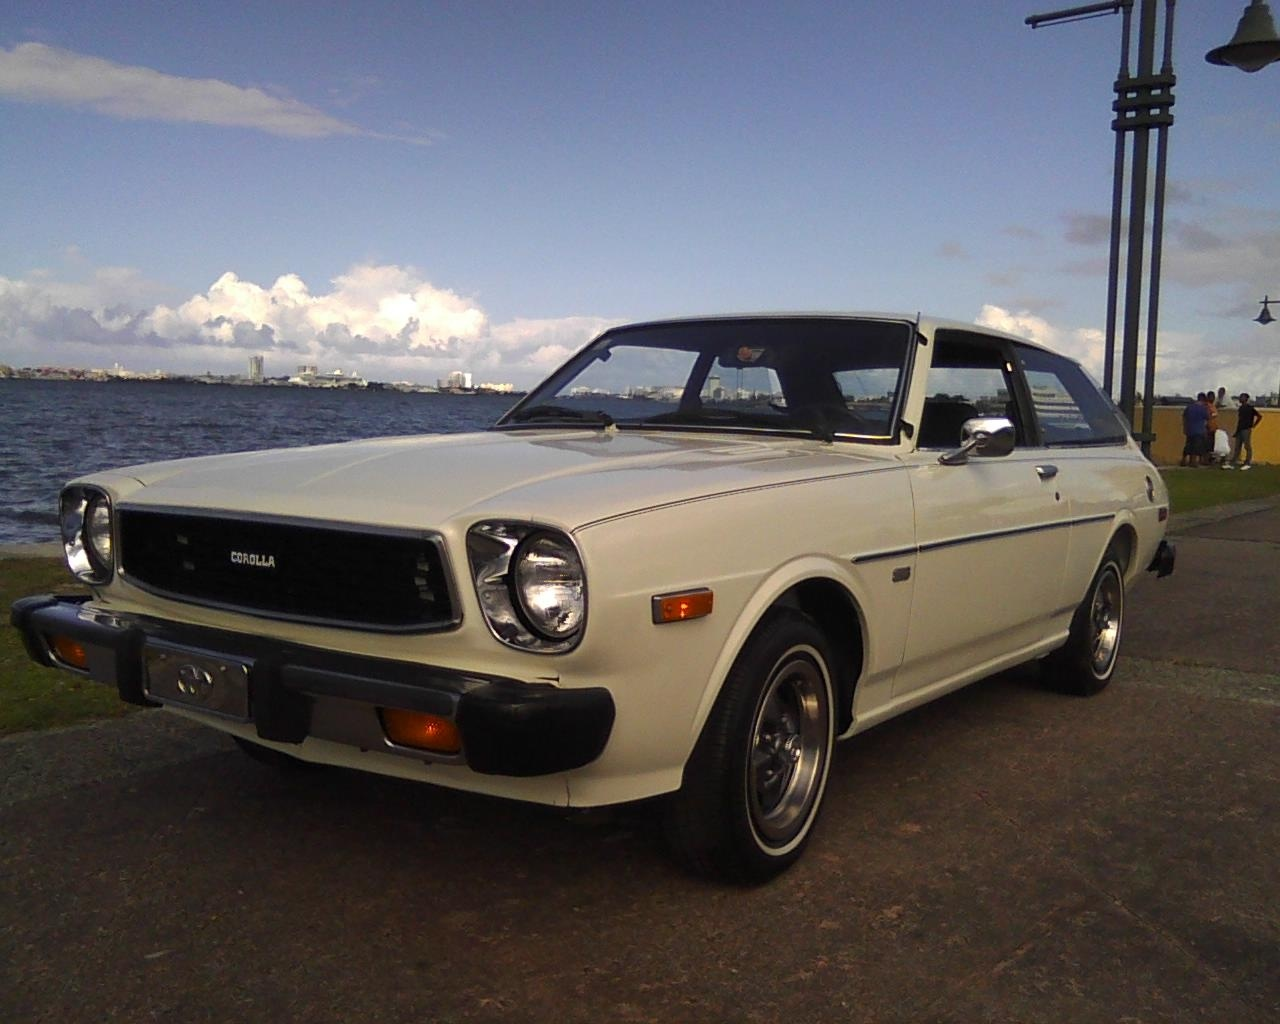 toyota corolla questions where can i get a wingshield rubber for a 1979 toyota corolla. Black Bedroom Furniture Sets. Home Design Ideas